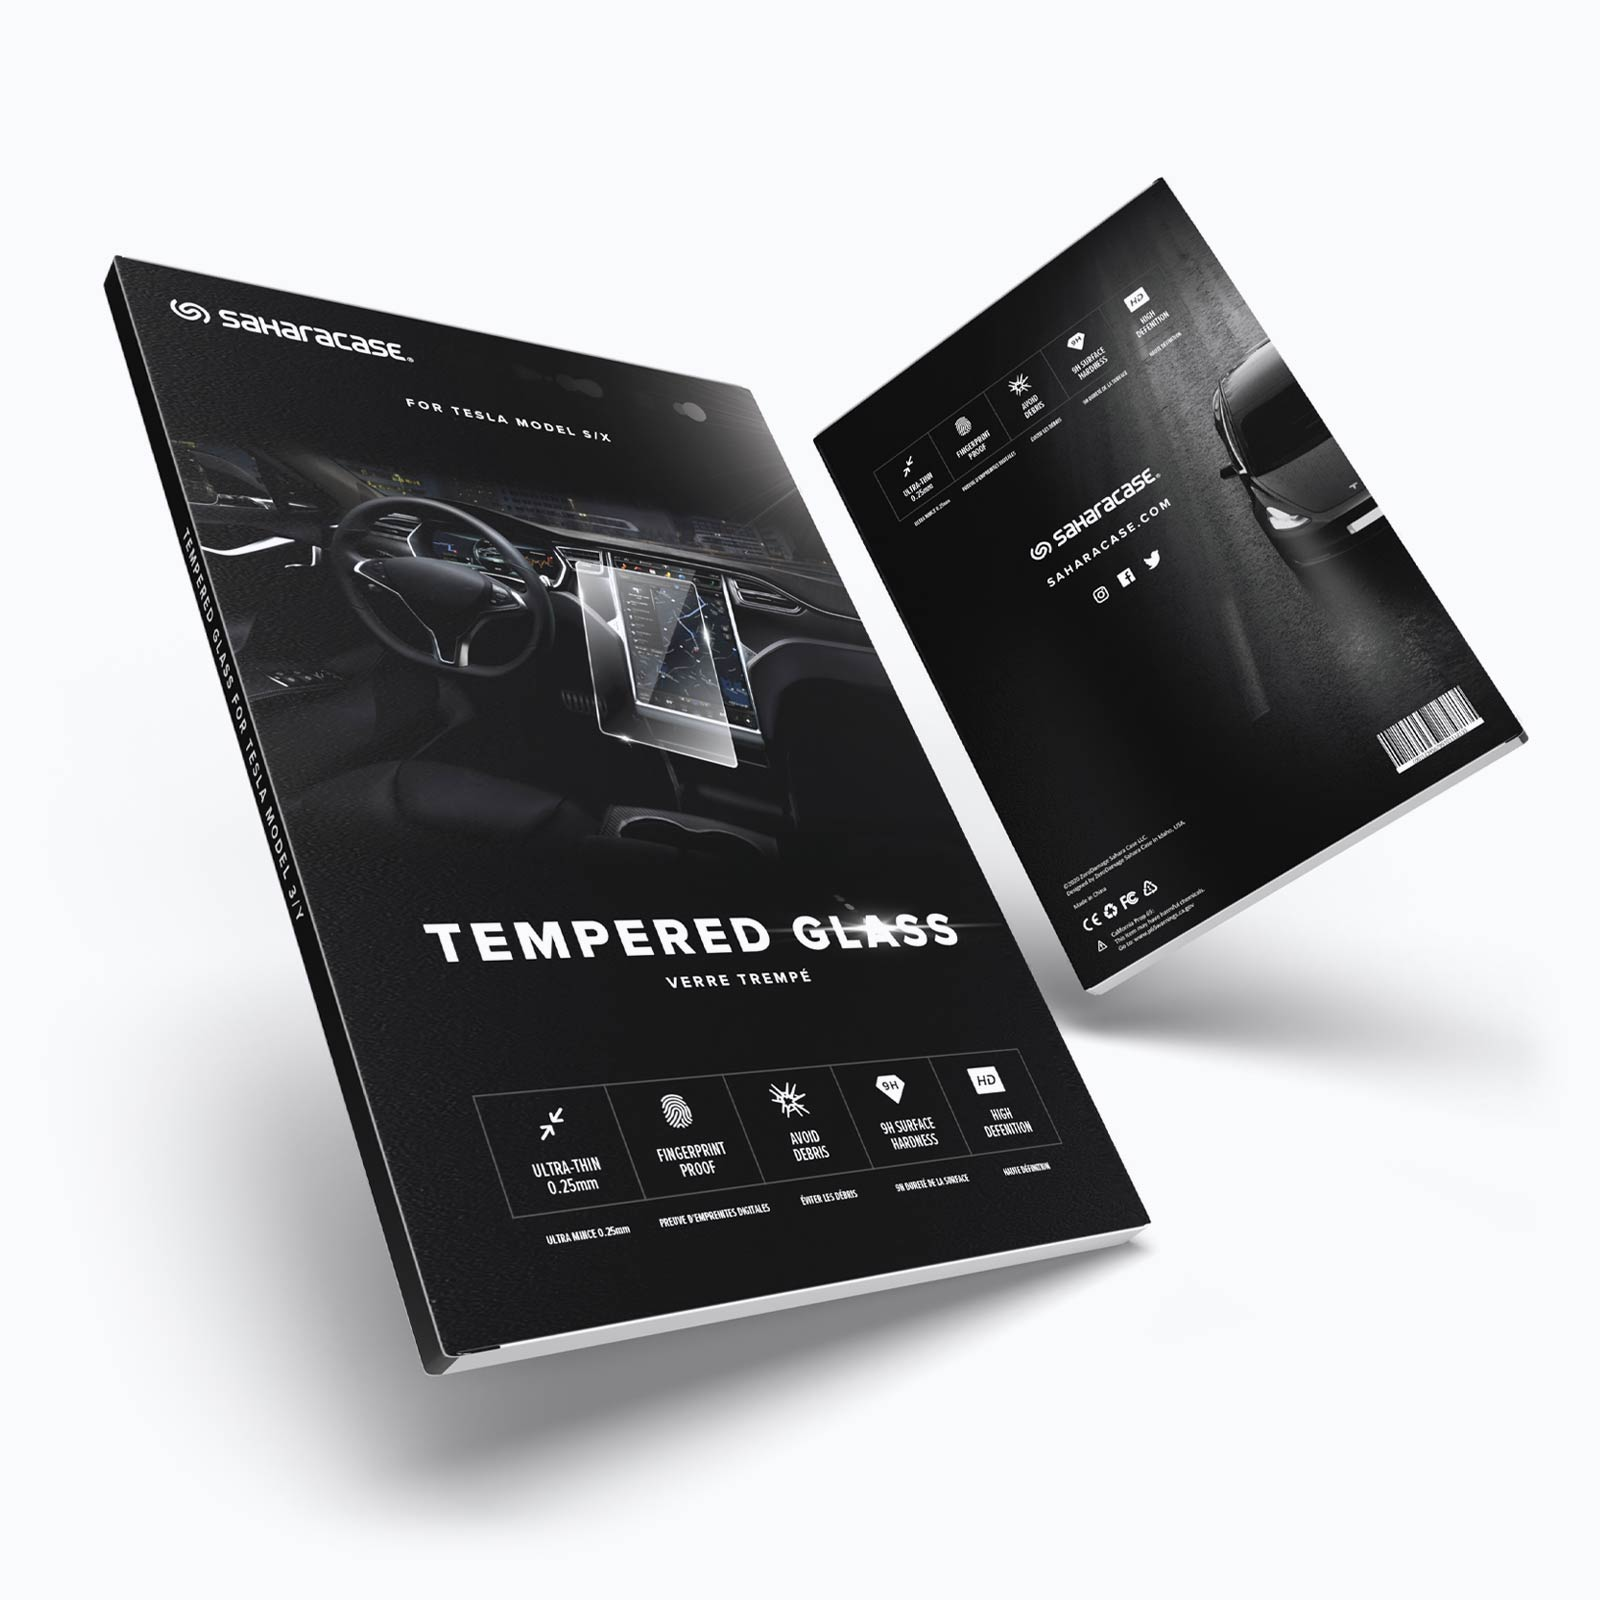 Tempered Glass Packaging Design